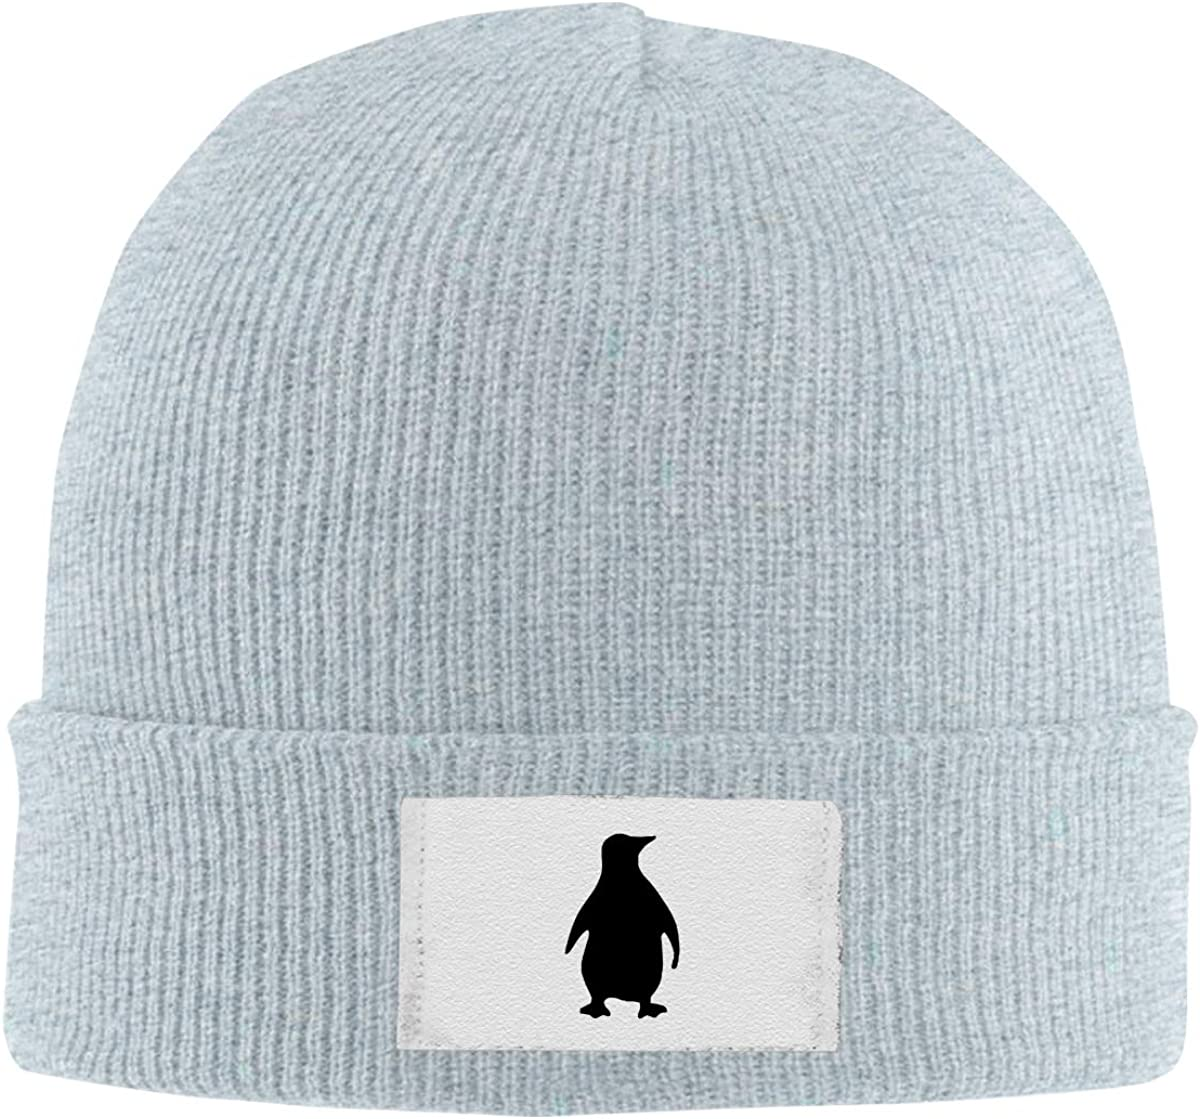 Dunpaiaa Skull Caps Shadow of The Penguin Winter Warm Knit Hats Stretchy Cuff Beanie Hat Black